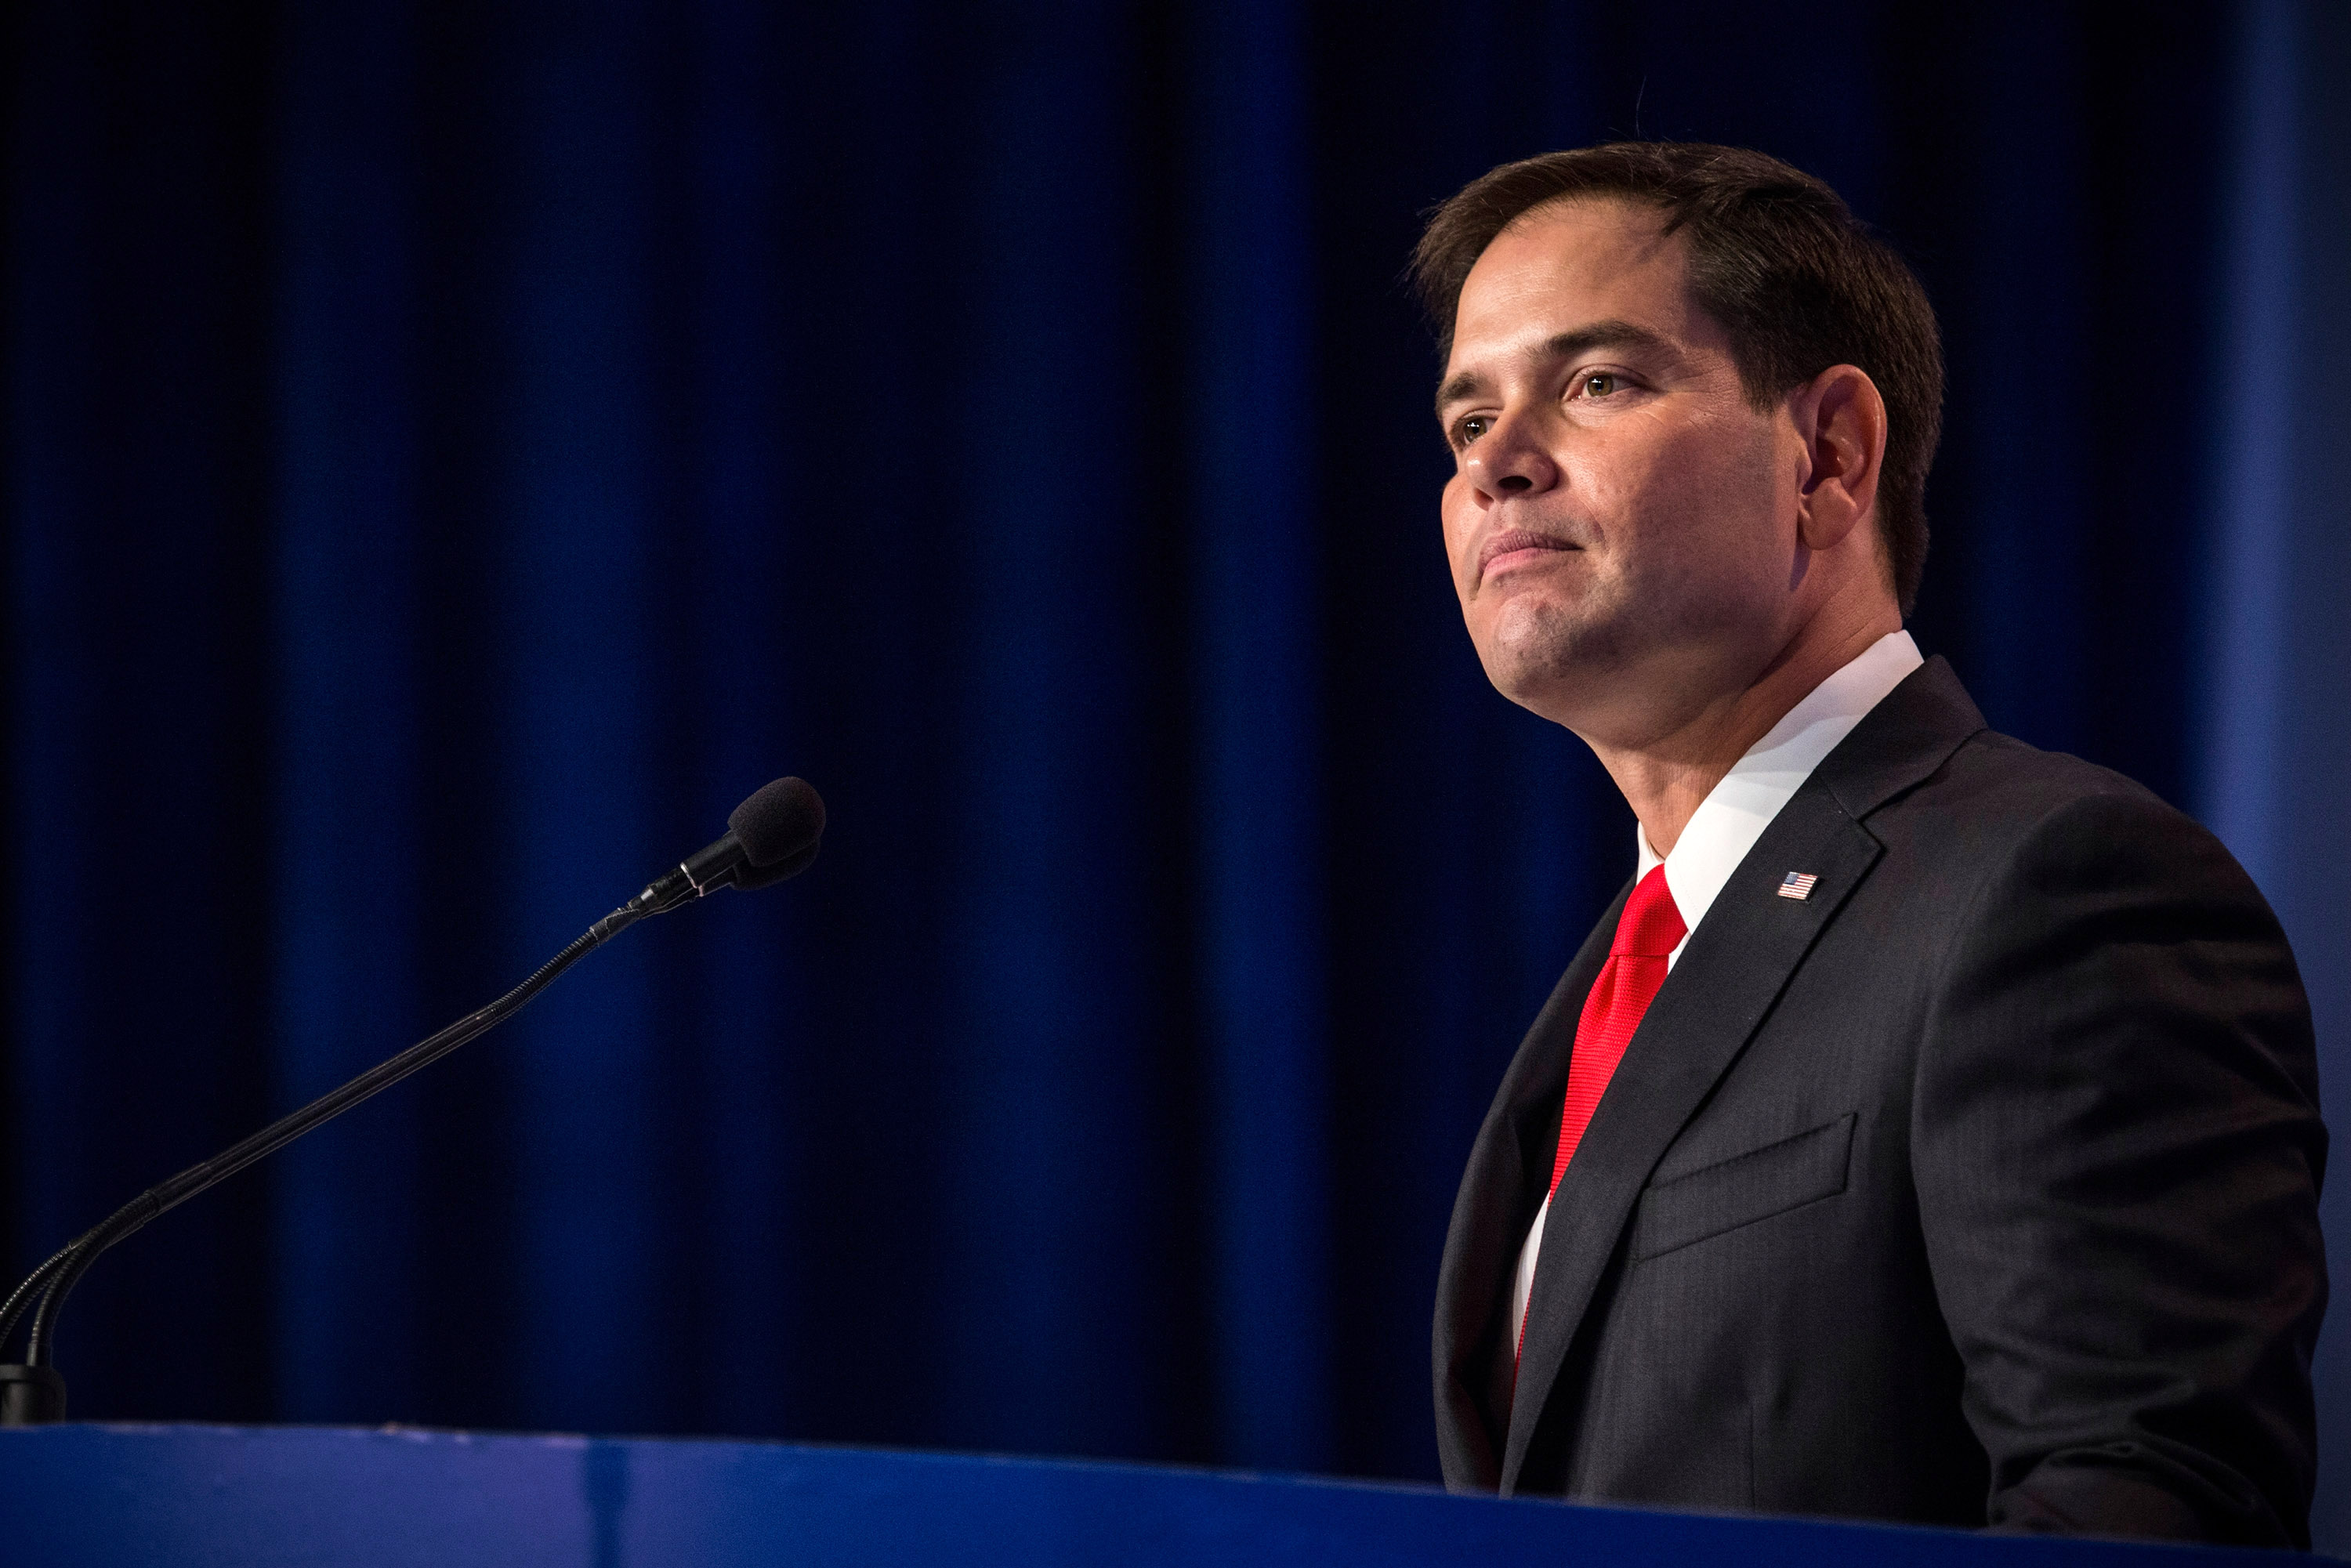 Senator Marco Rubio speaks at the 2013 Values Voter Summit.